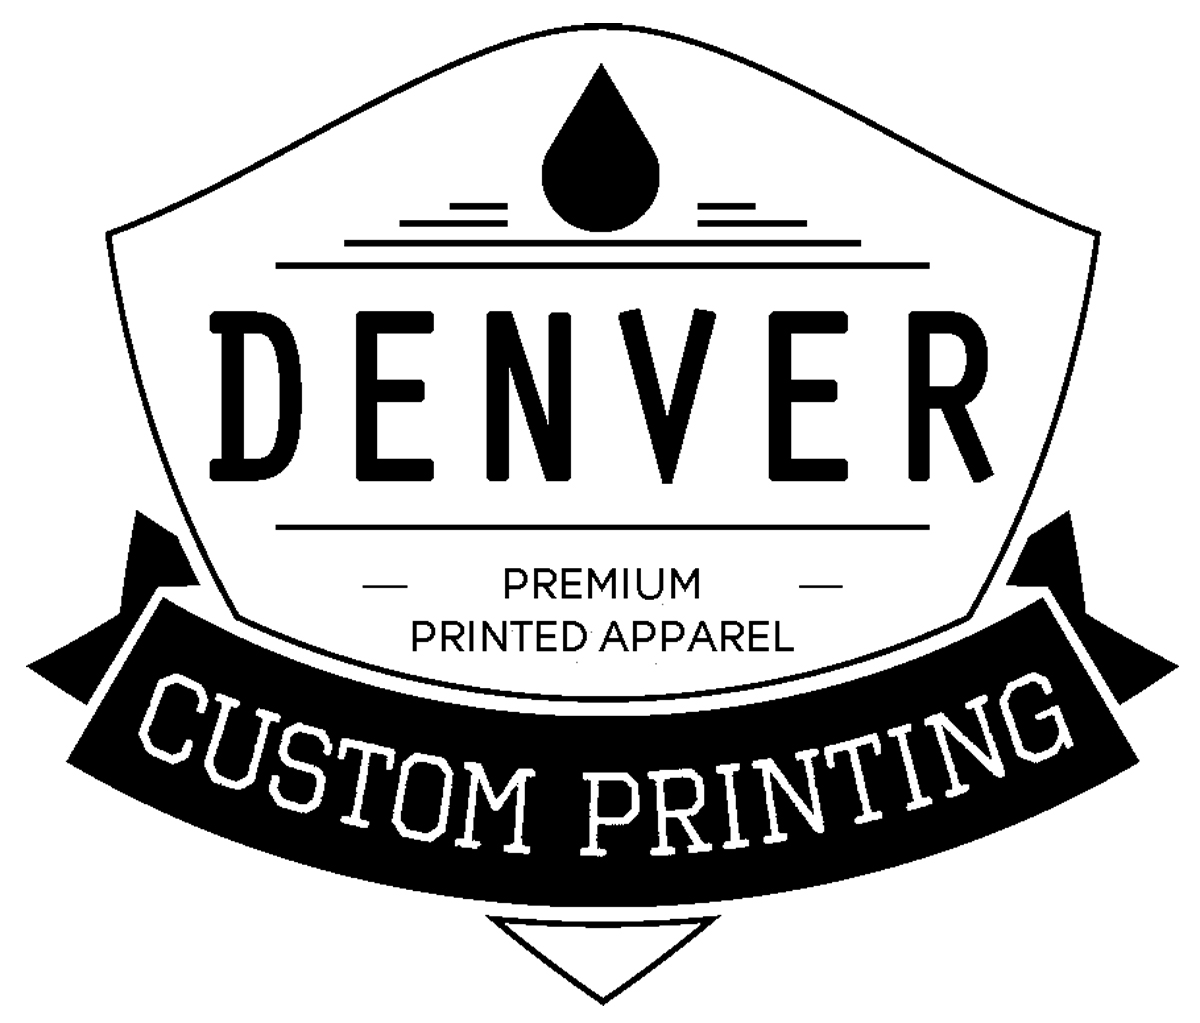 DENVER CUSTOM PRINTING, screen printing, direct to garment, custom ...